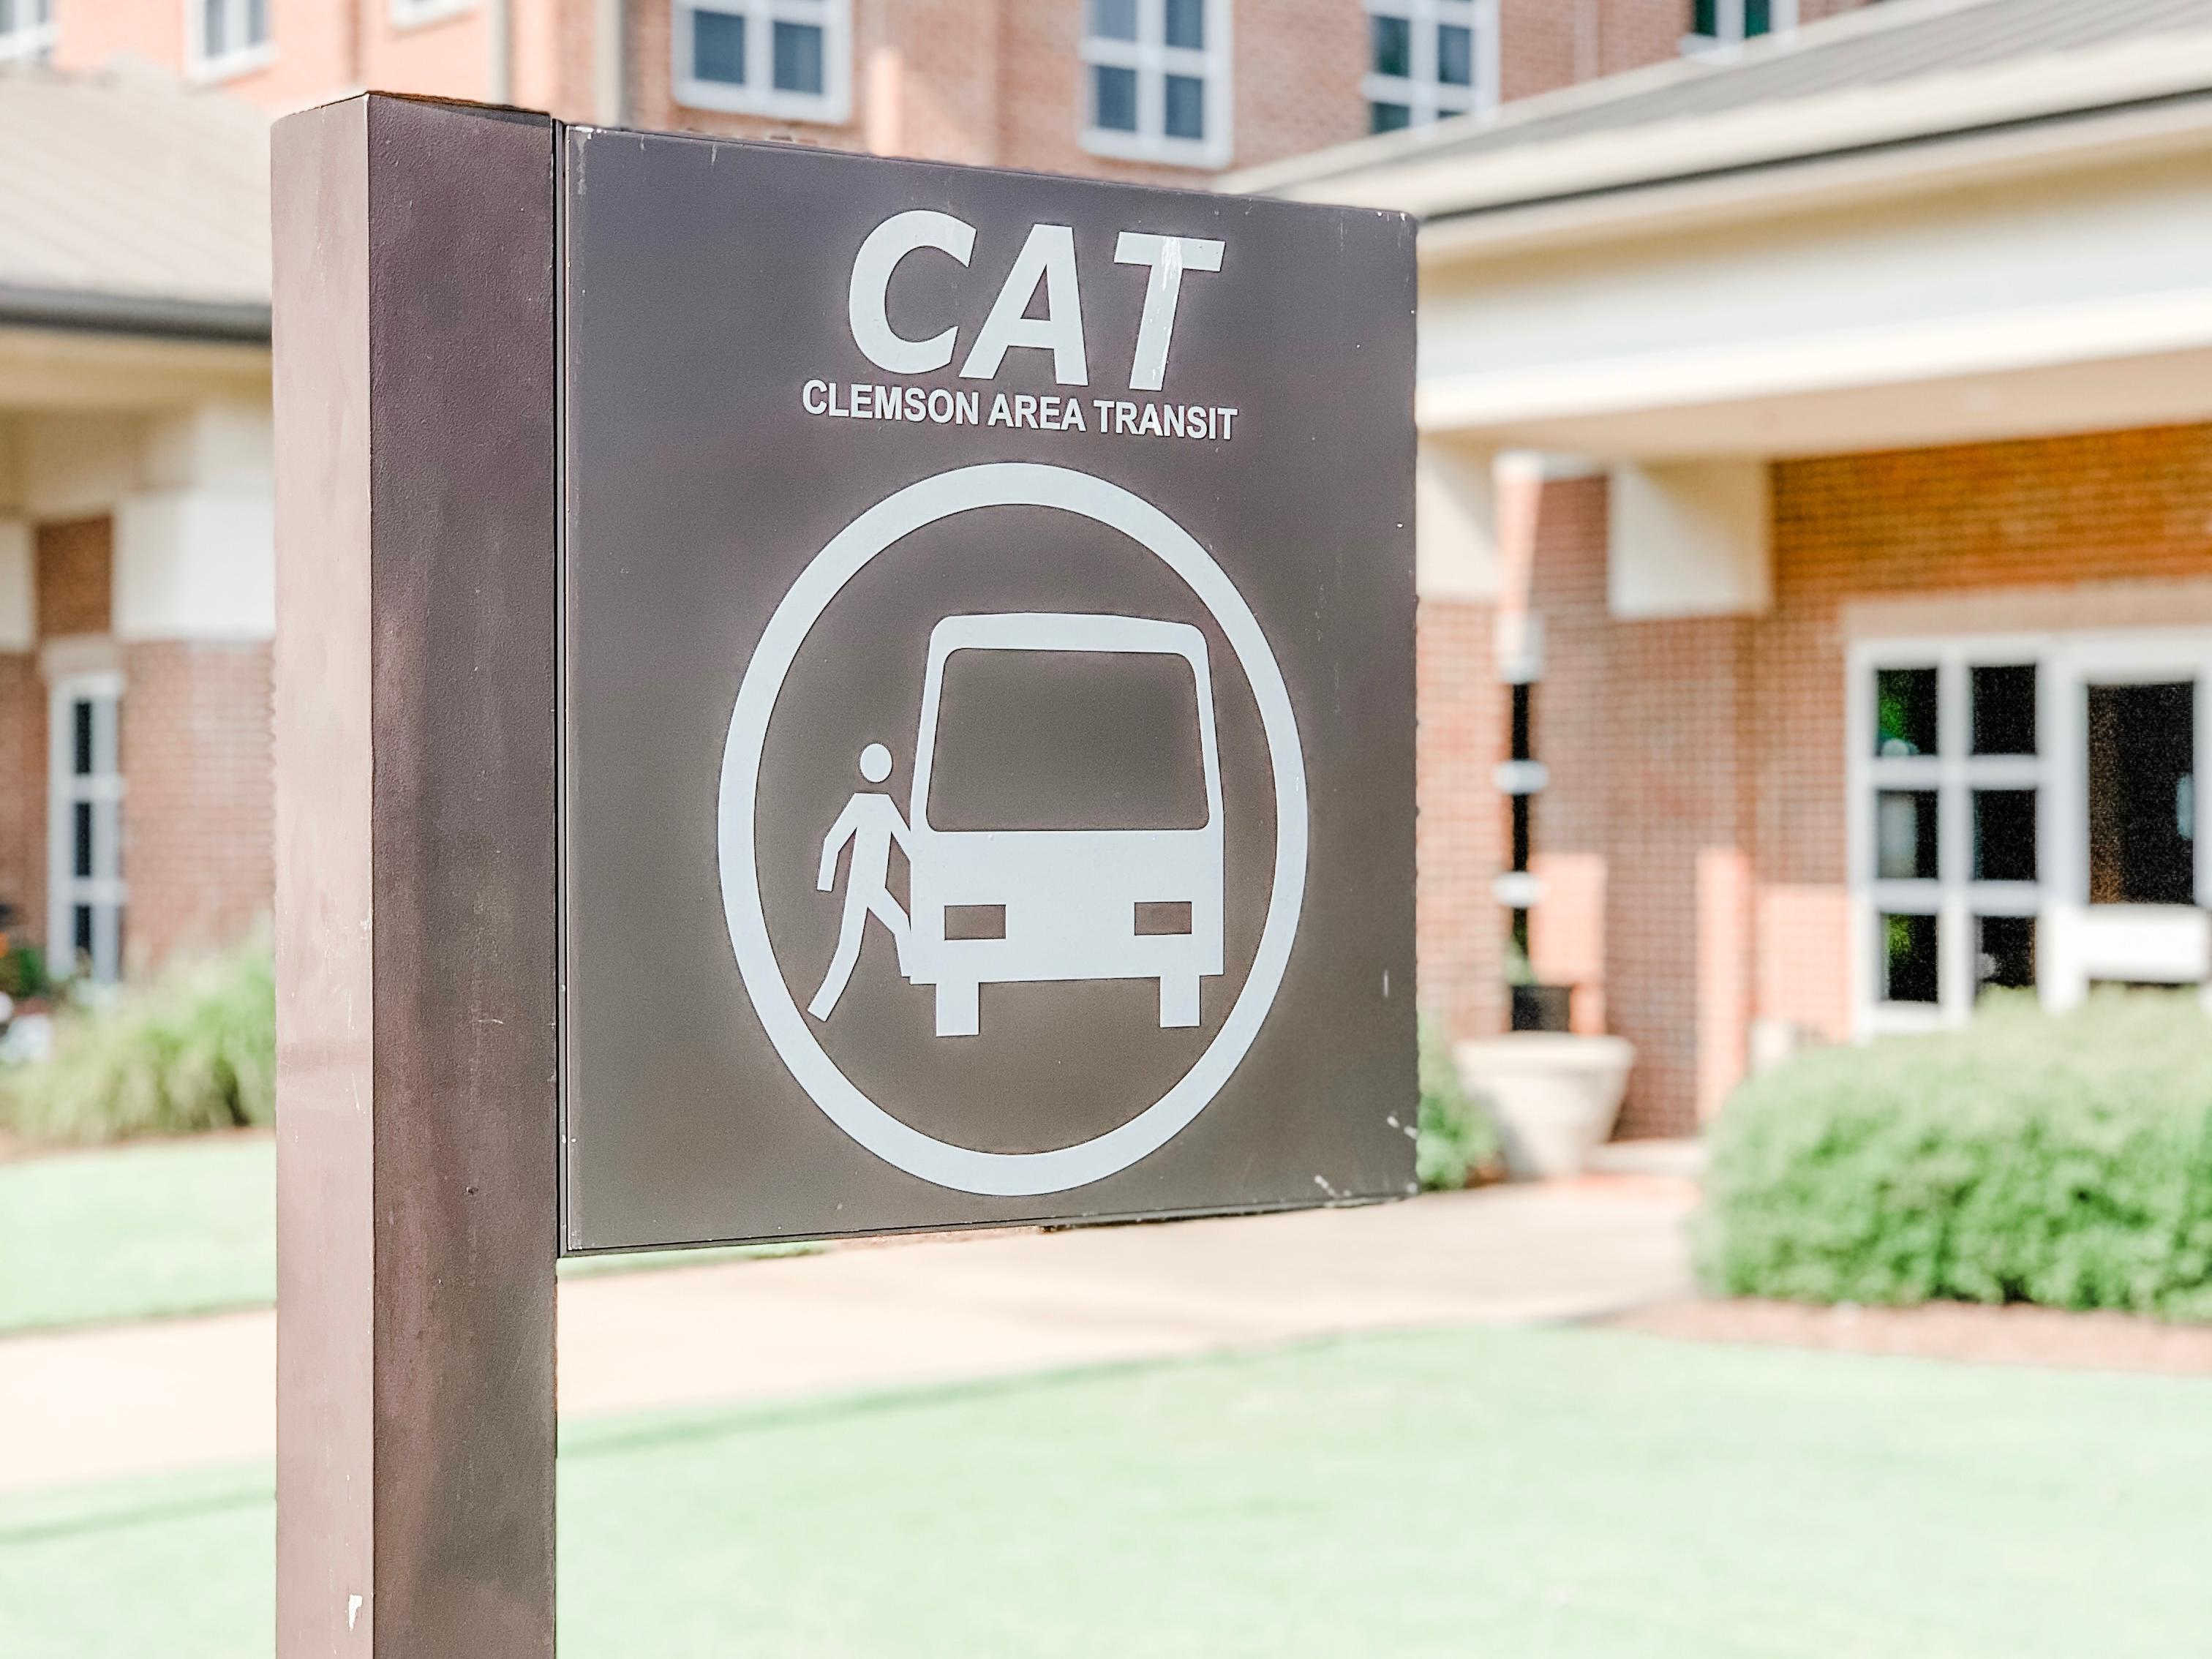 CATbus sign to show Stop in front of hotel building